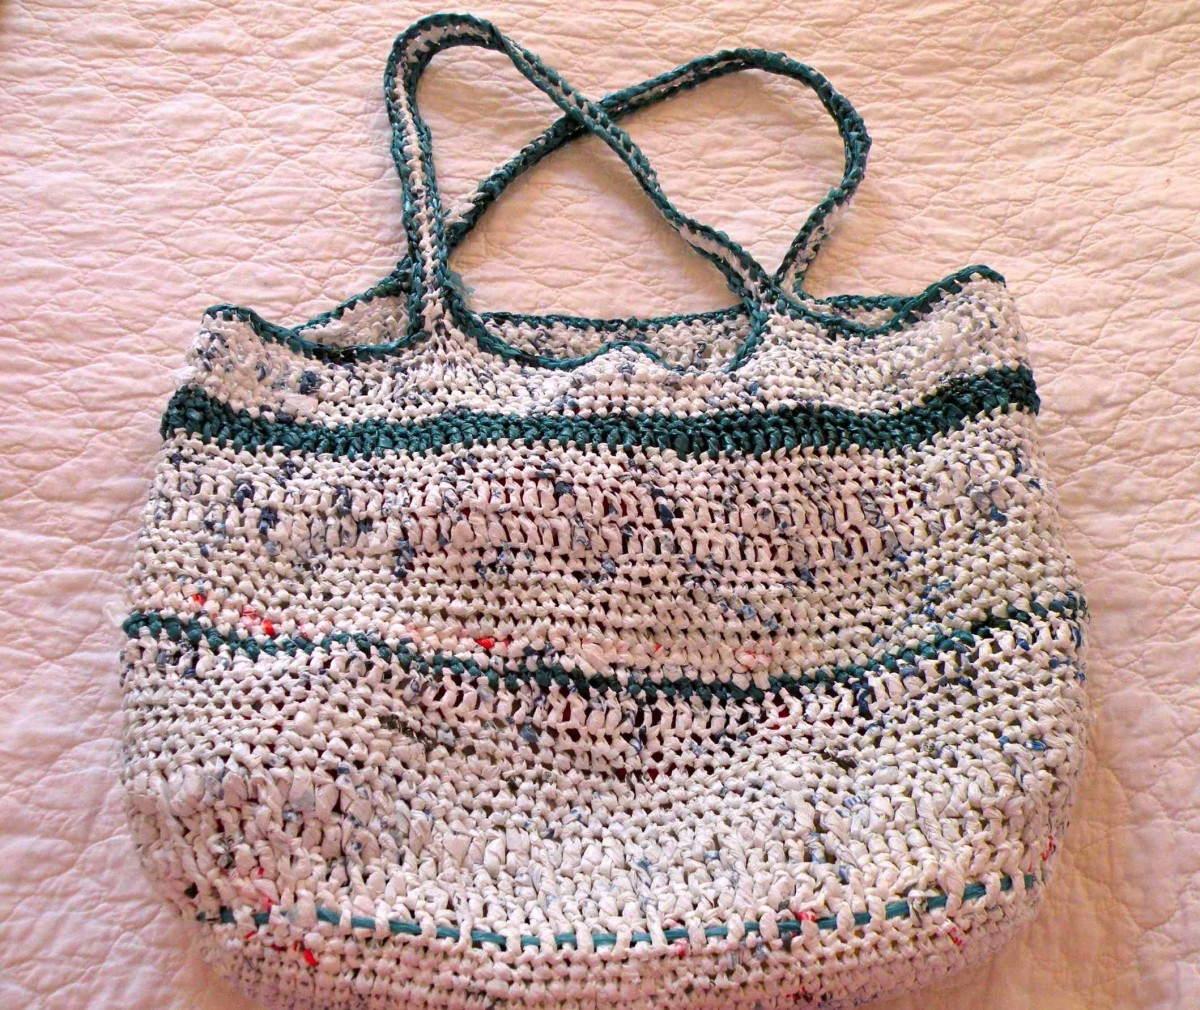 Beach bag from plastic grocery bags crocheted by Stephanie Henkel. This was my second project!